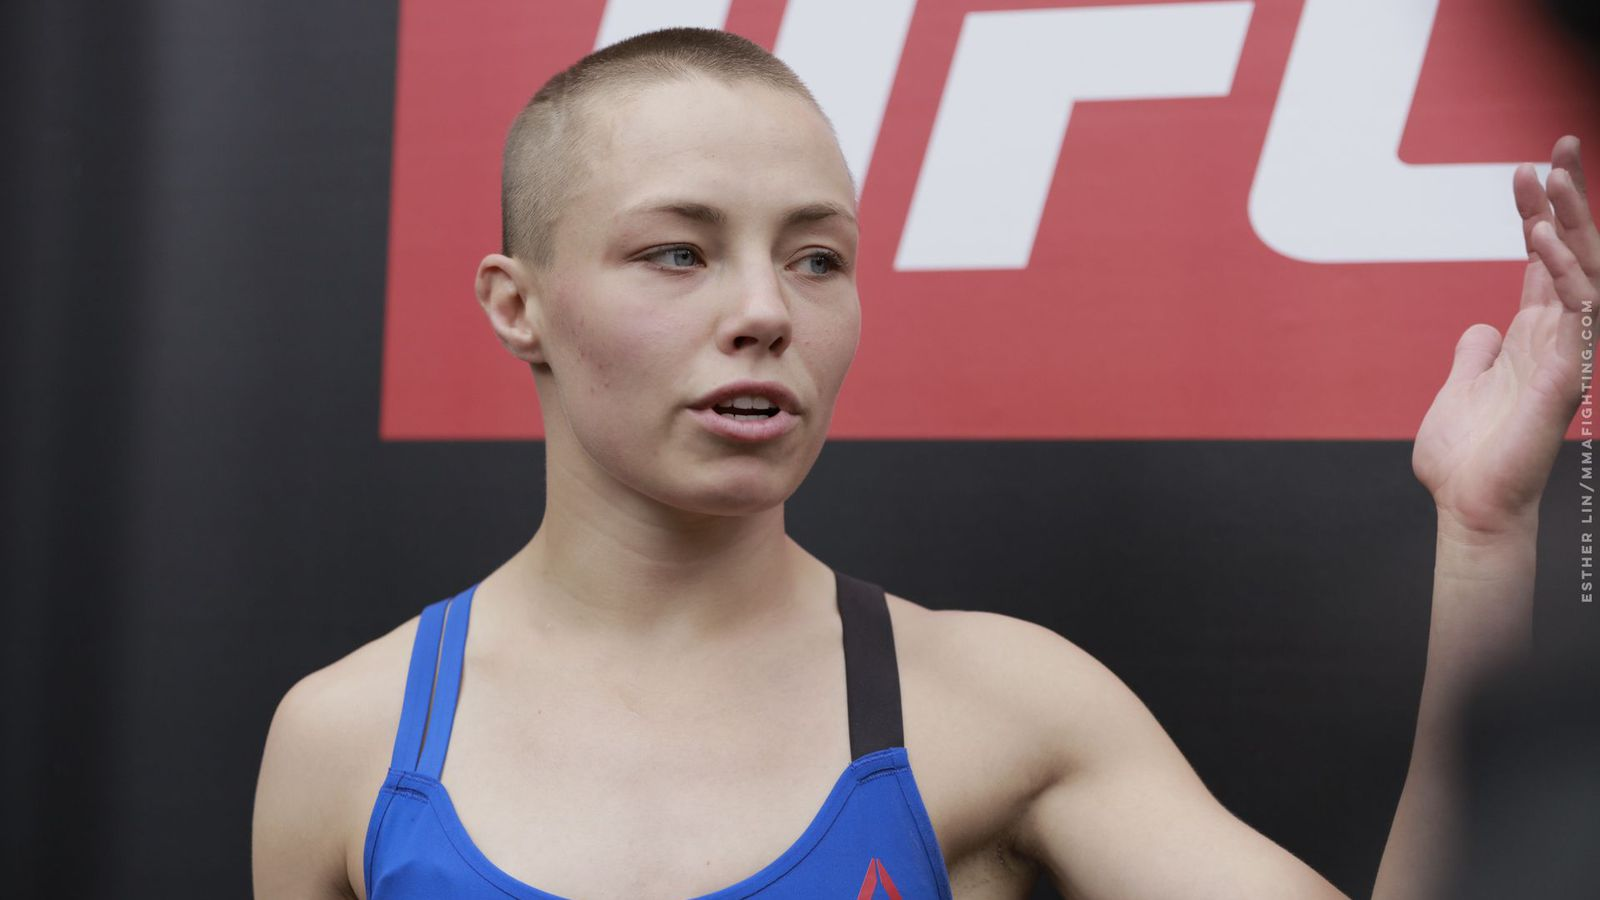 rose namajunas - photo #2